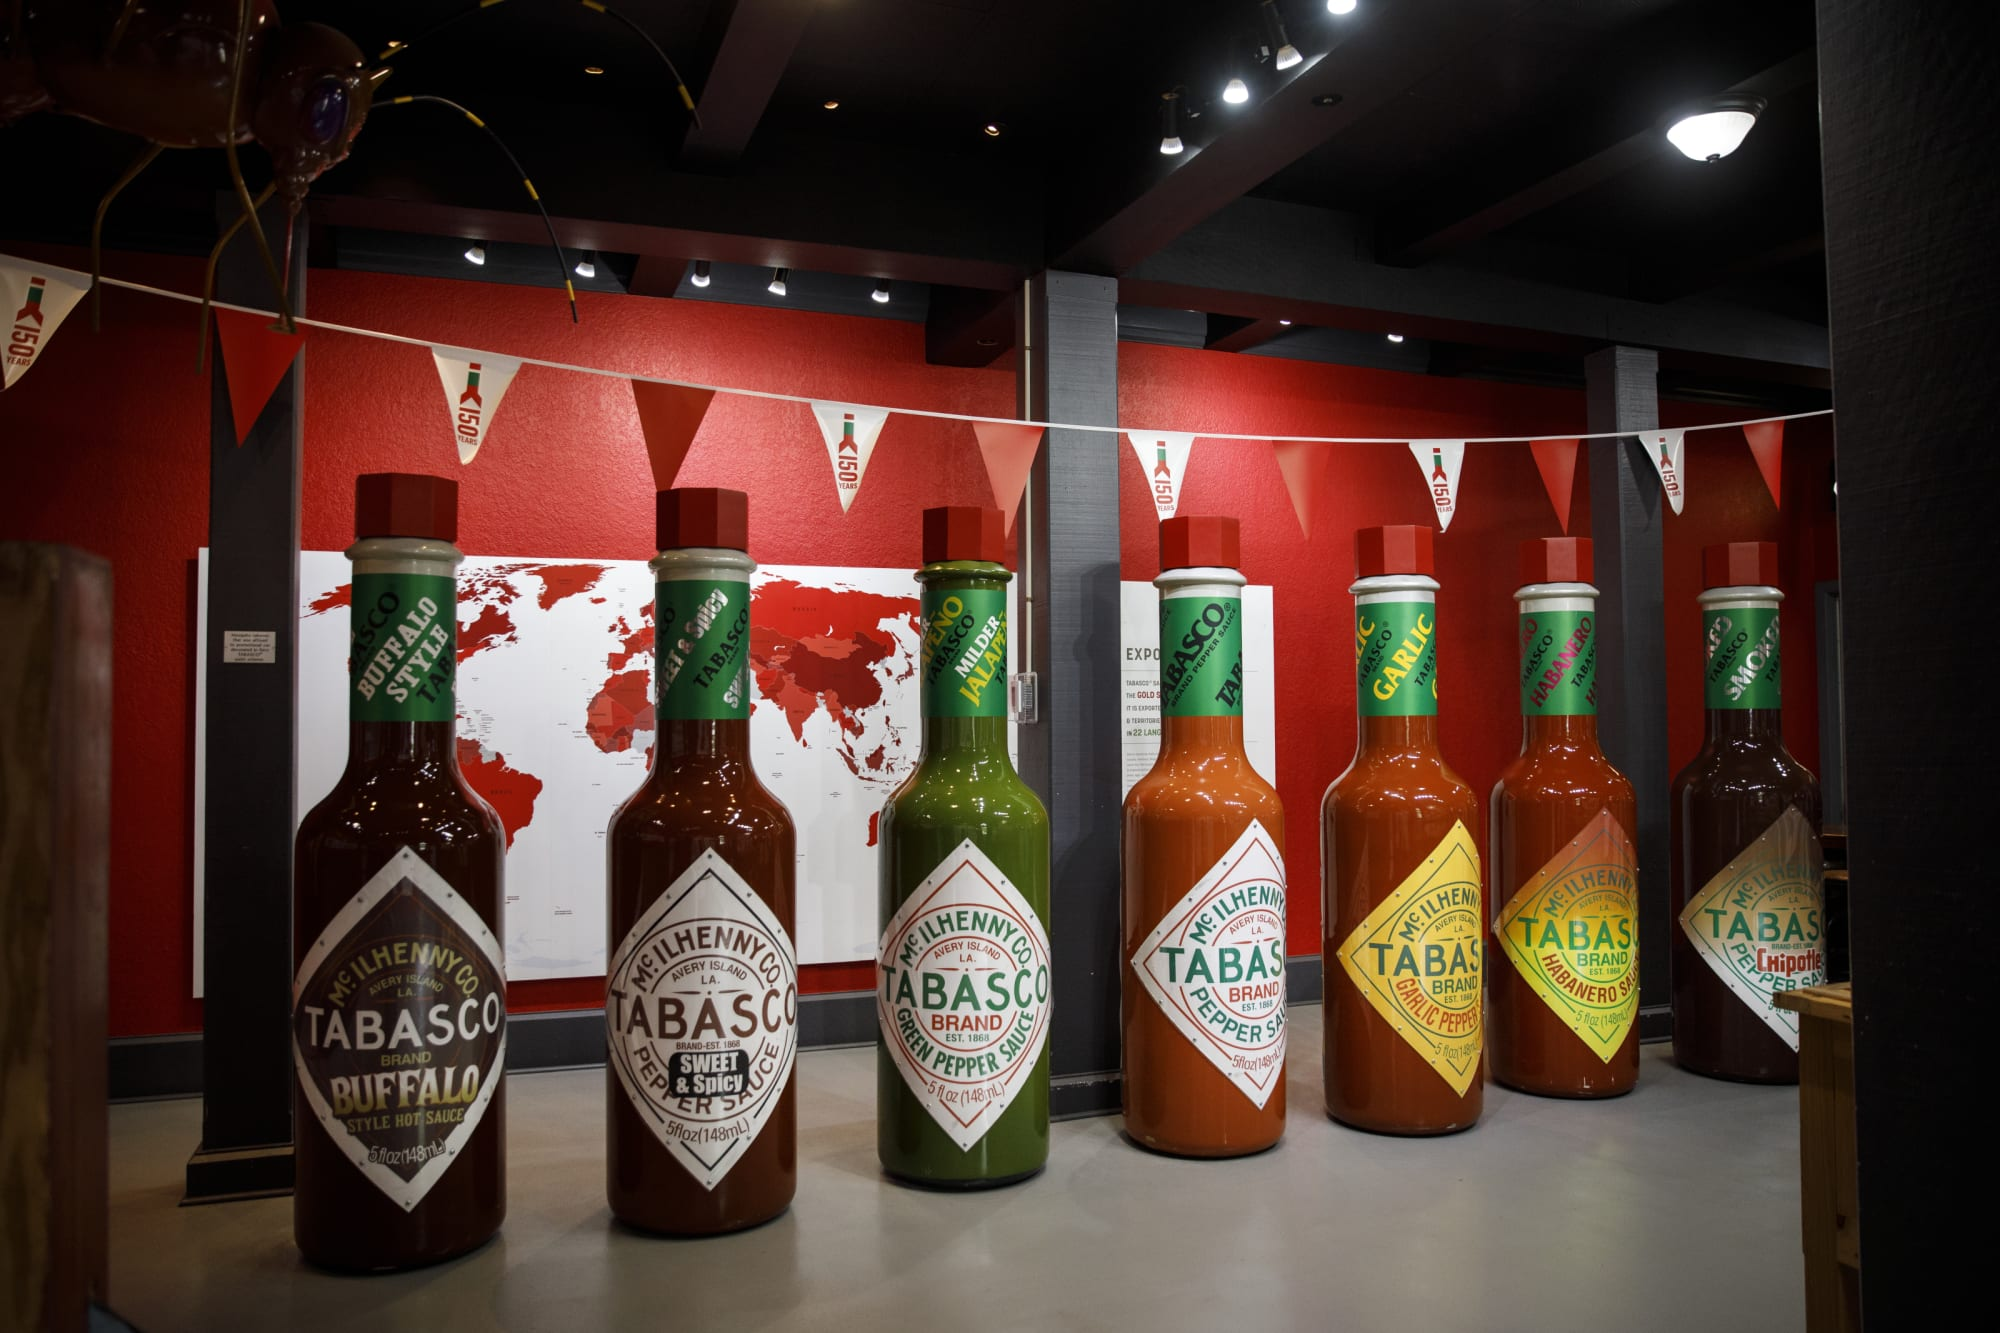 Tabasco is bringing its signature kick to summer grilling